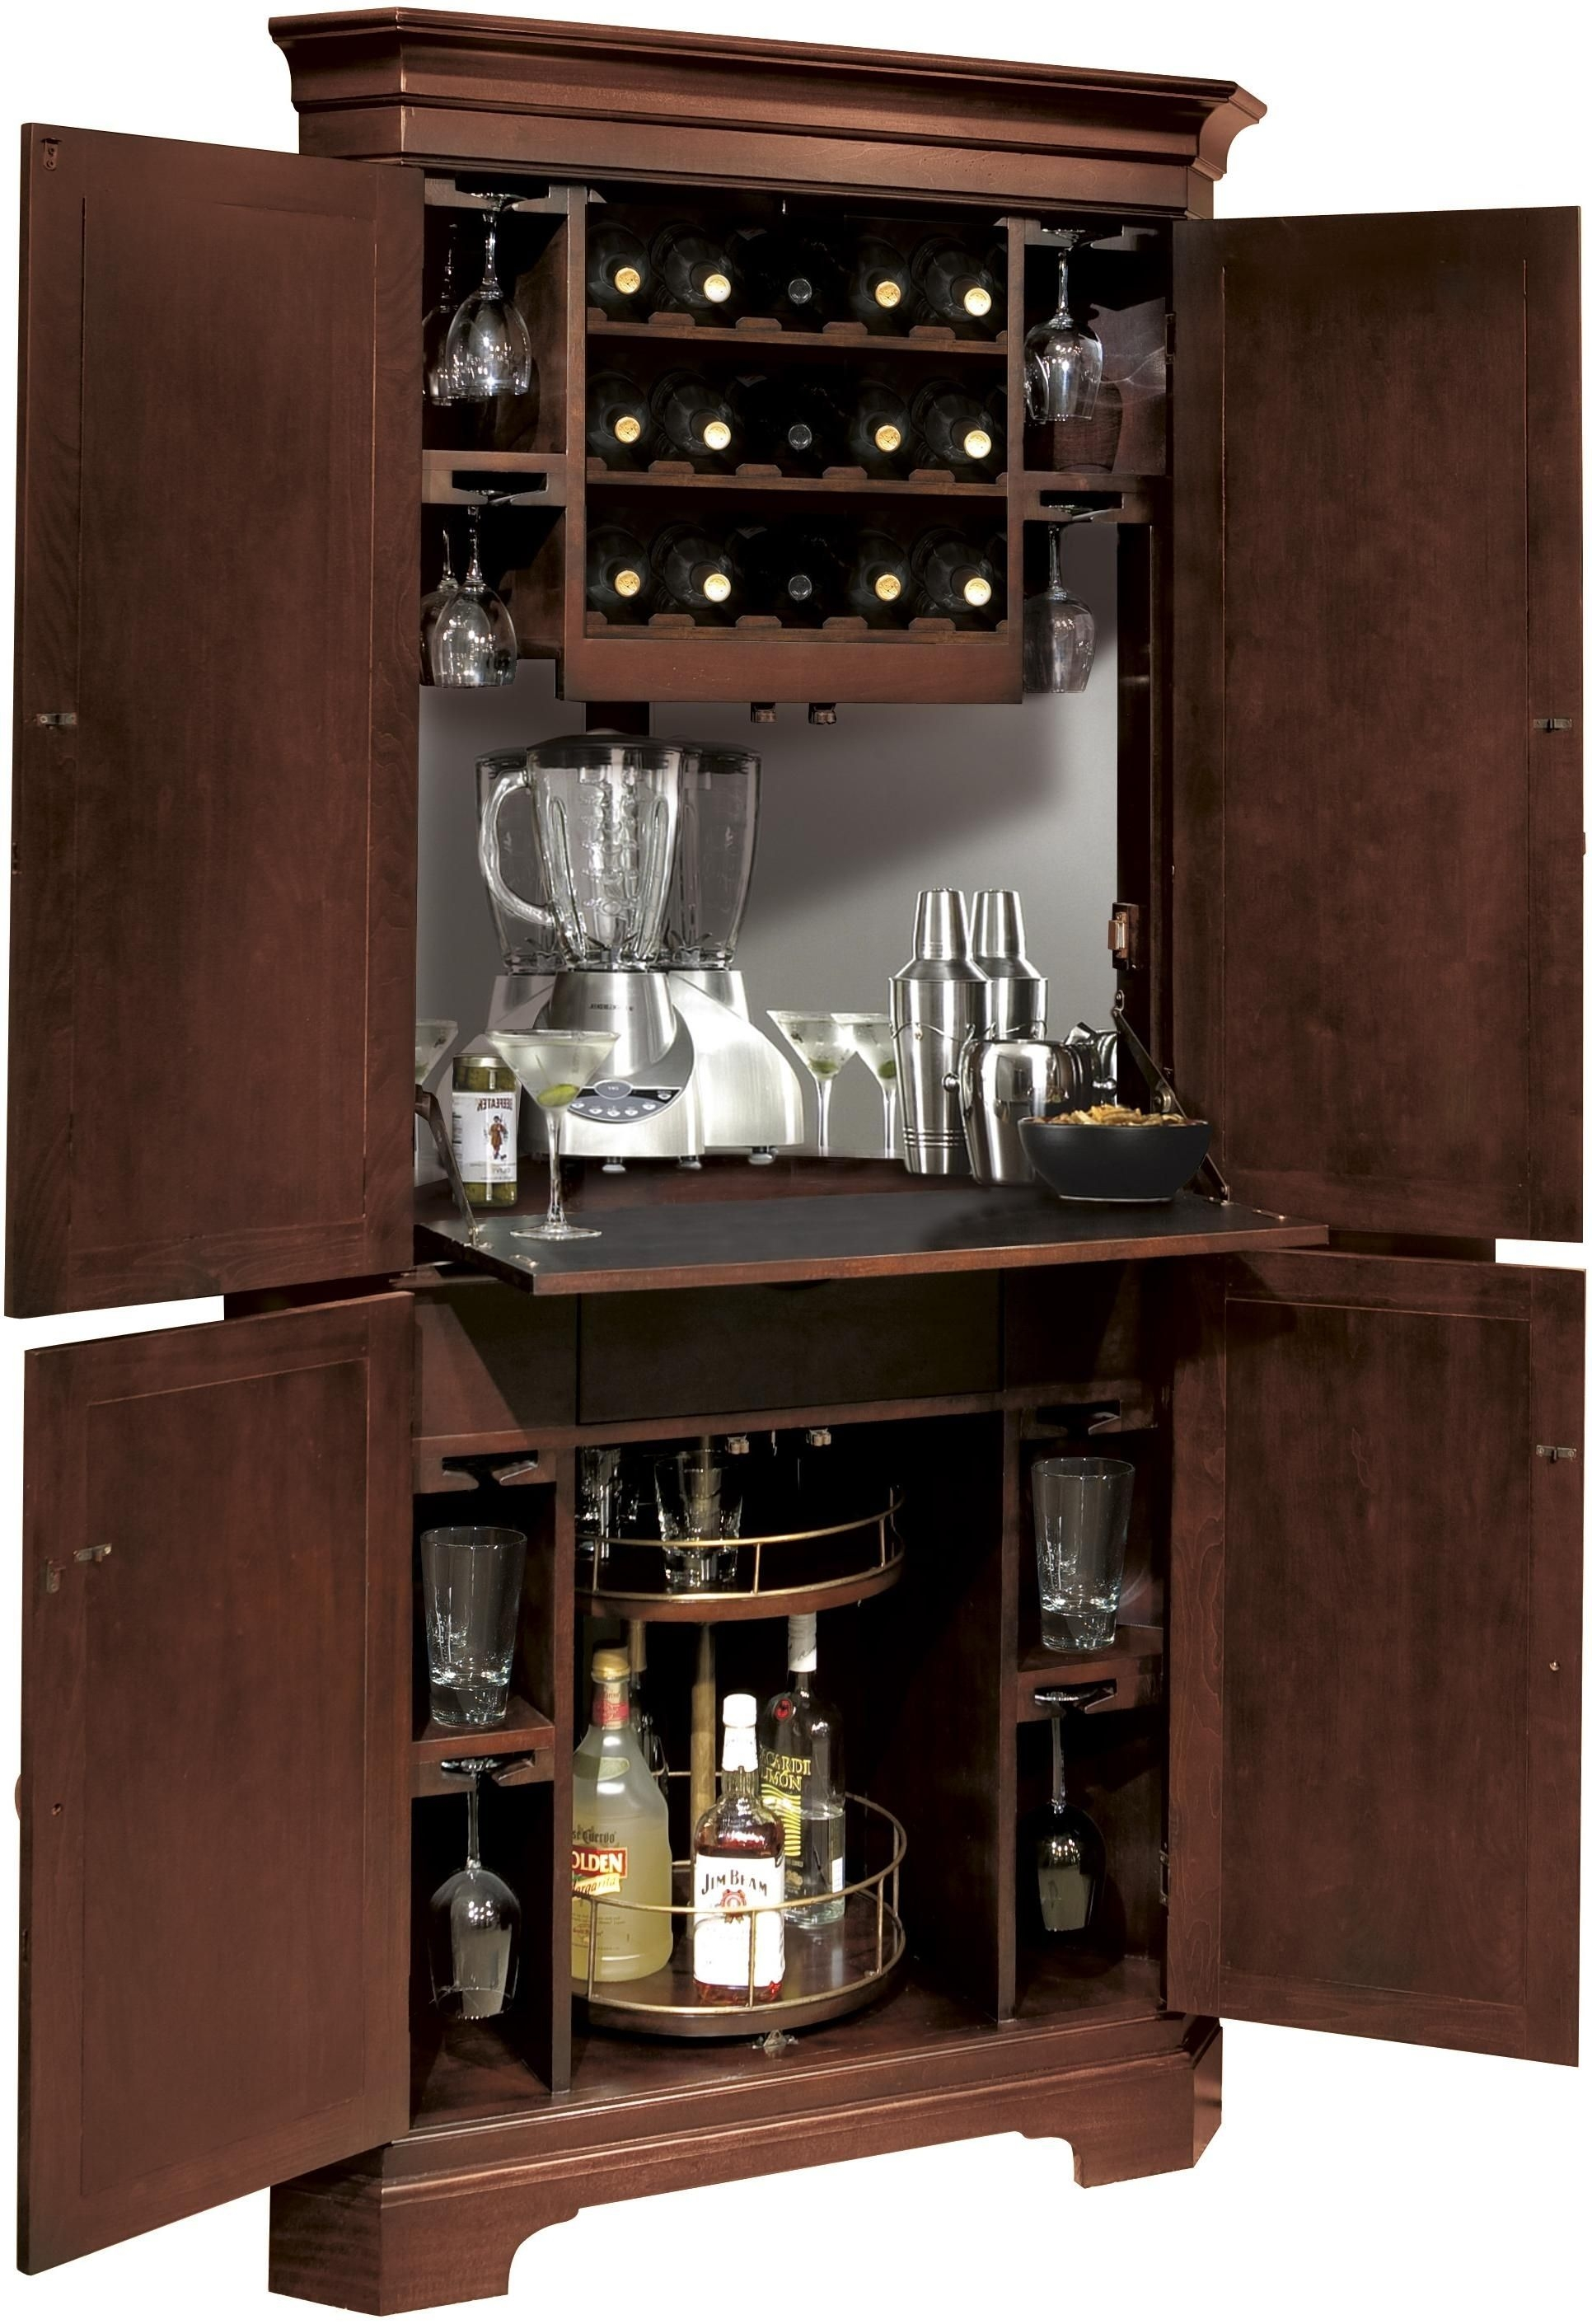 Liquor Cabinet With Lock You Ll Love In, How To Lock Up Liquor Cabinet